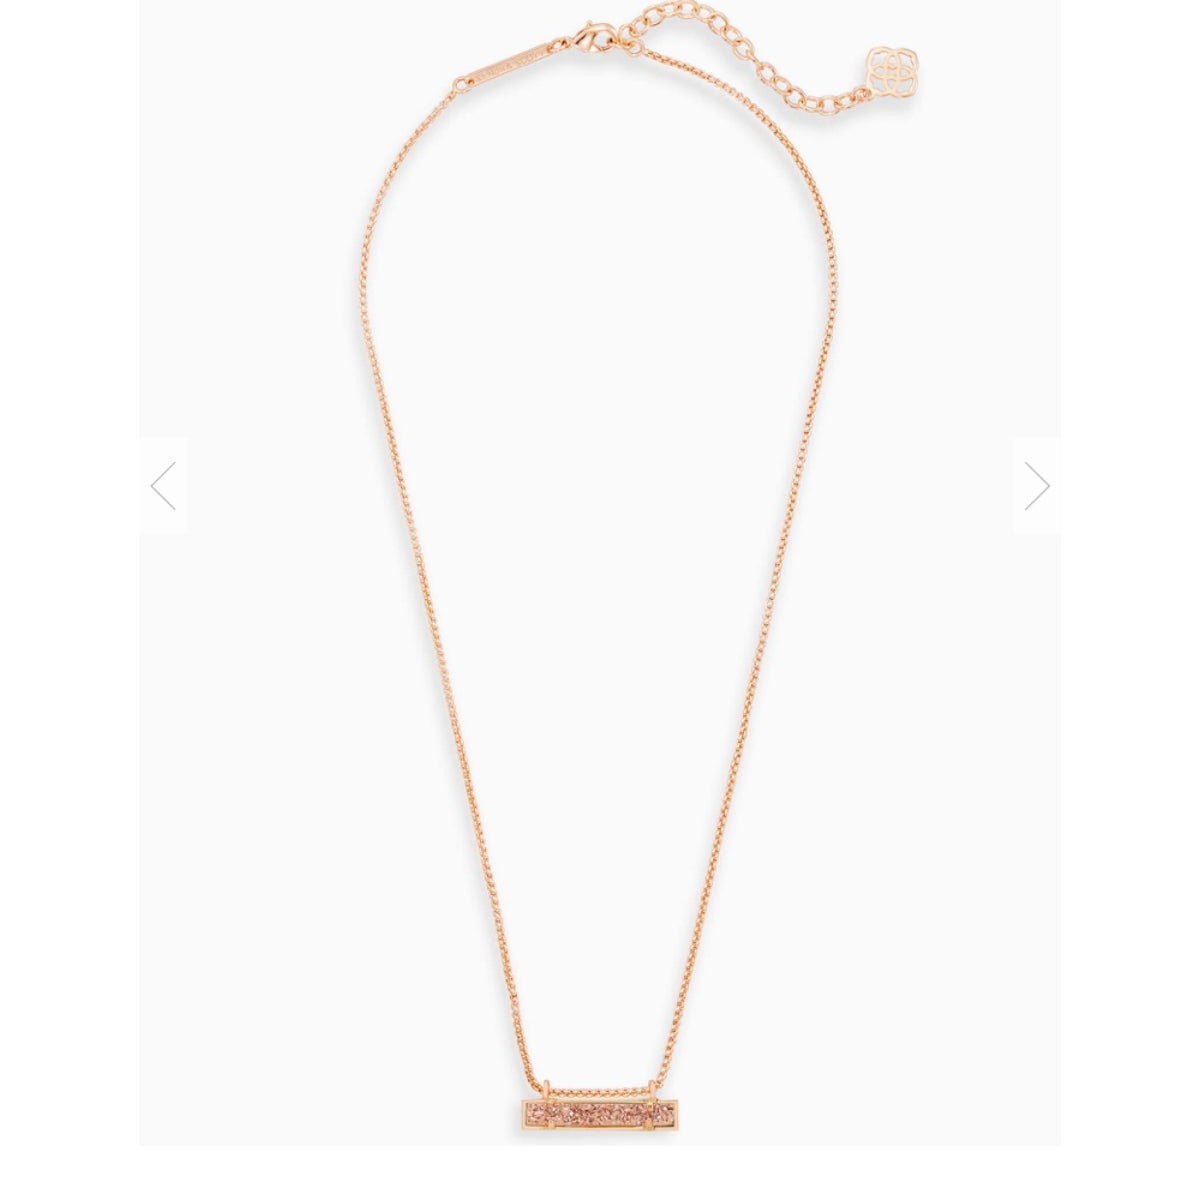 Image of NWT Kendra Scott Leanor Rosegold Druzy Necklace